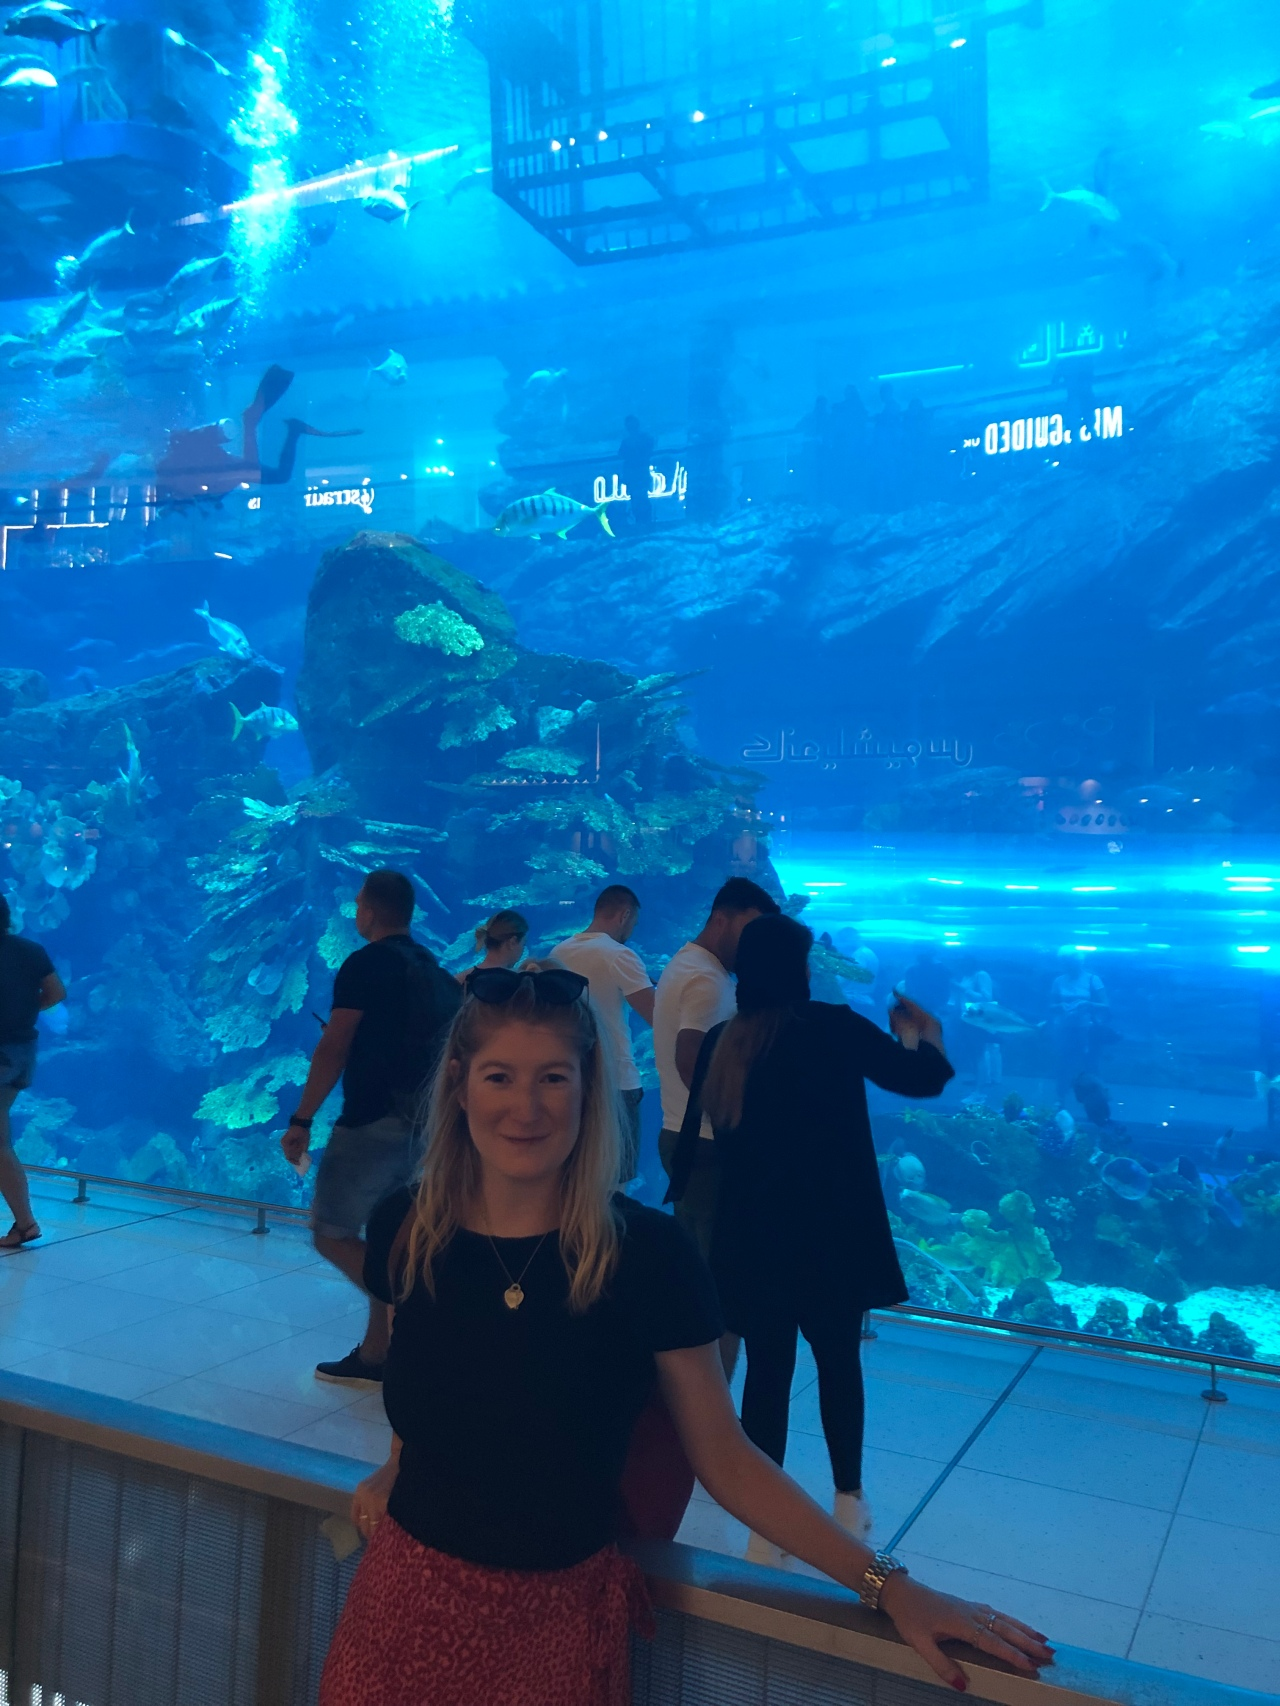 Diving in Dubai Mall aquarium